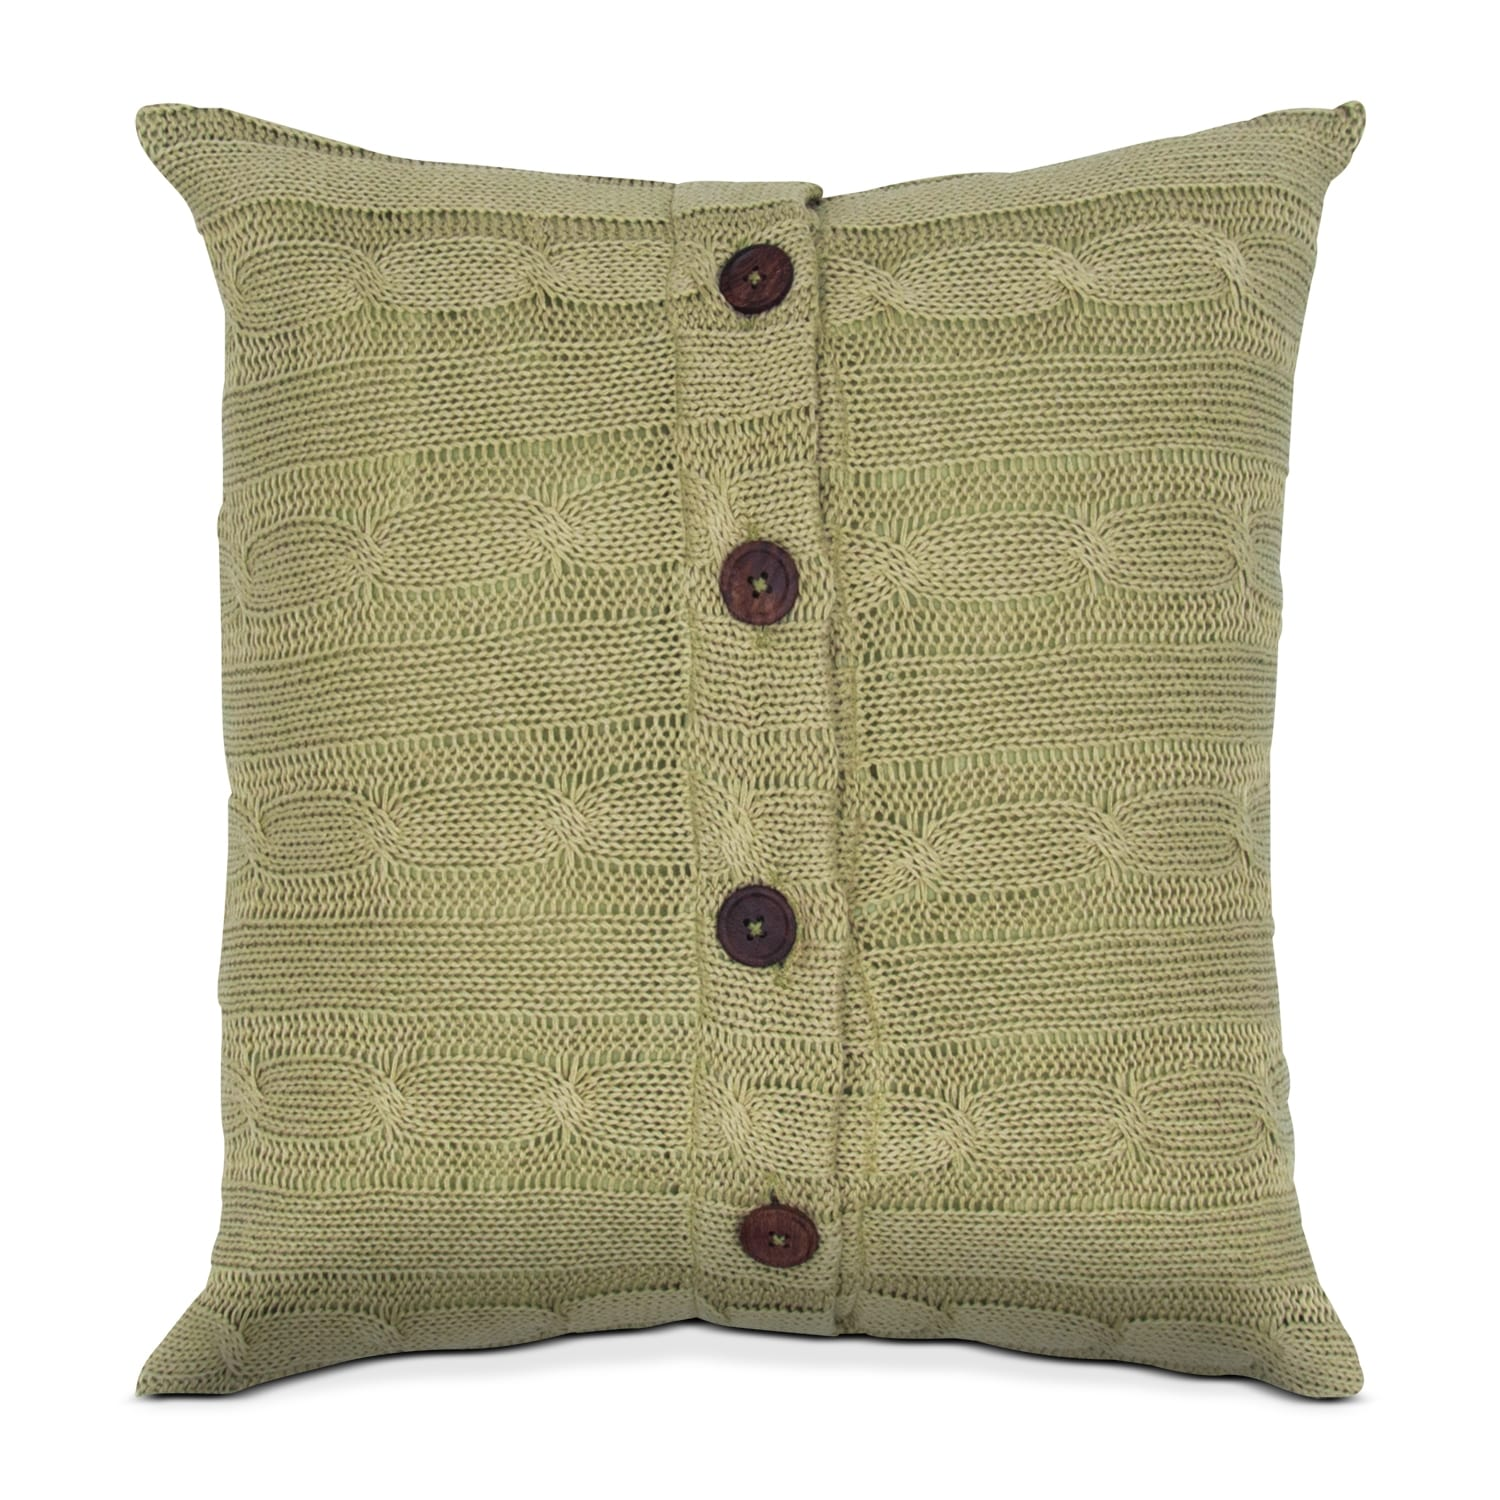 Knit Peace Decorative Pillow